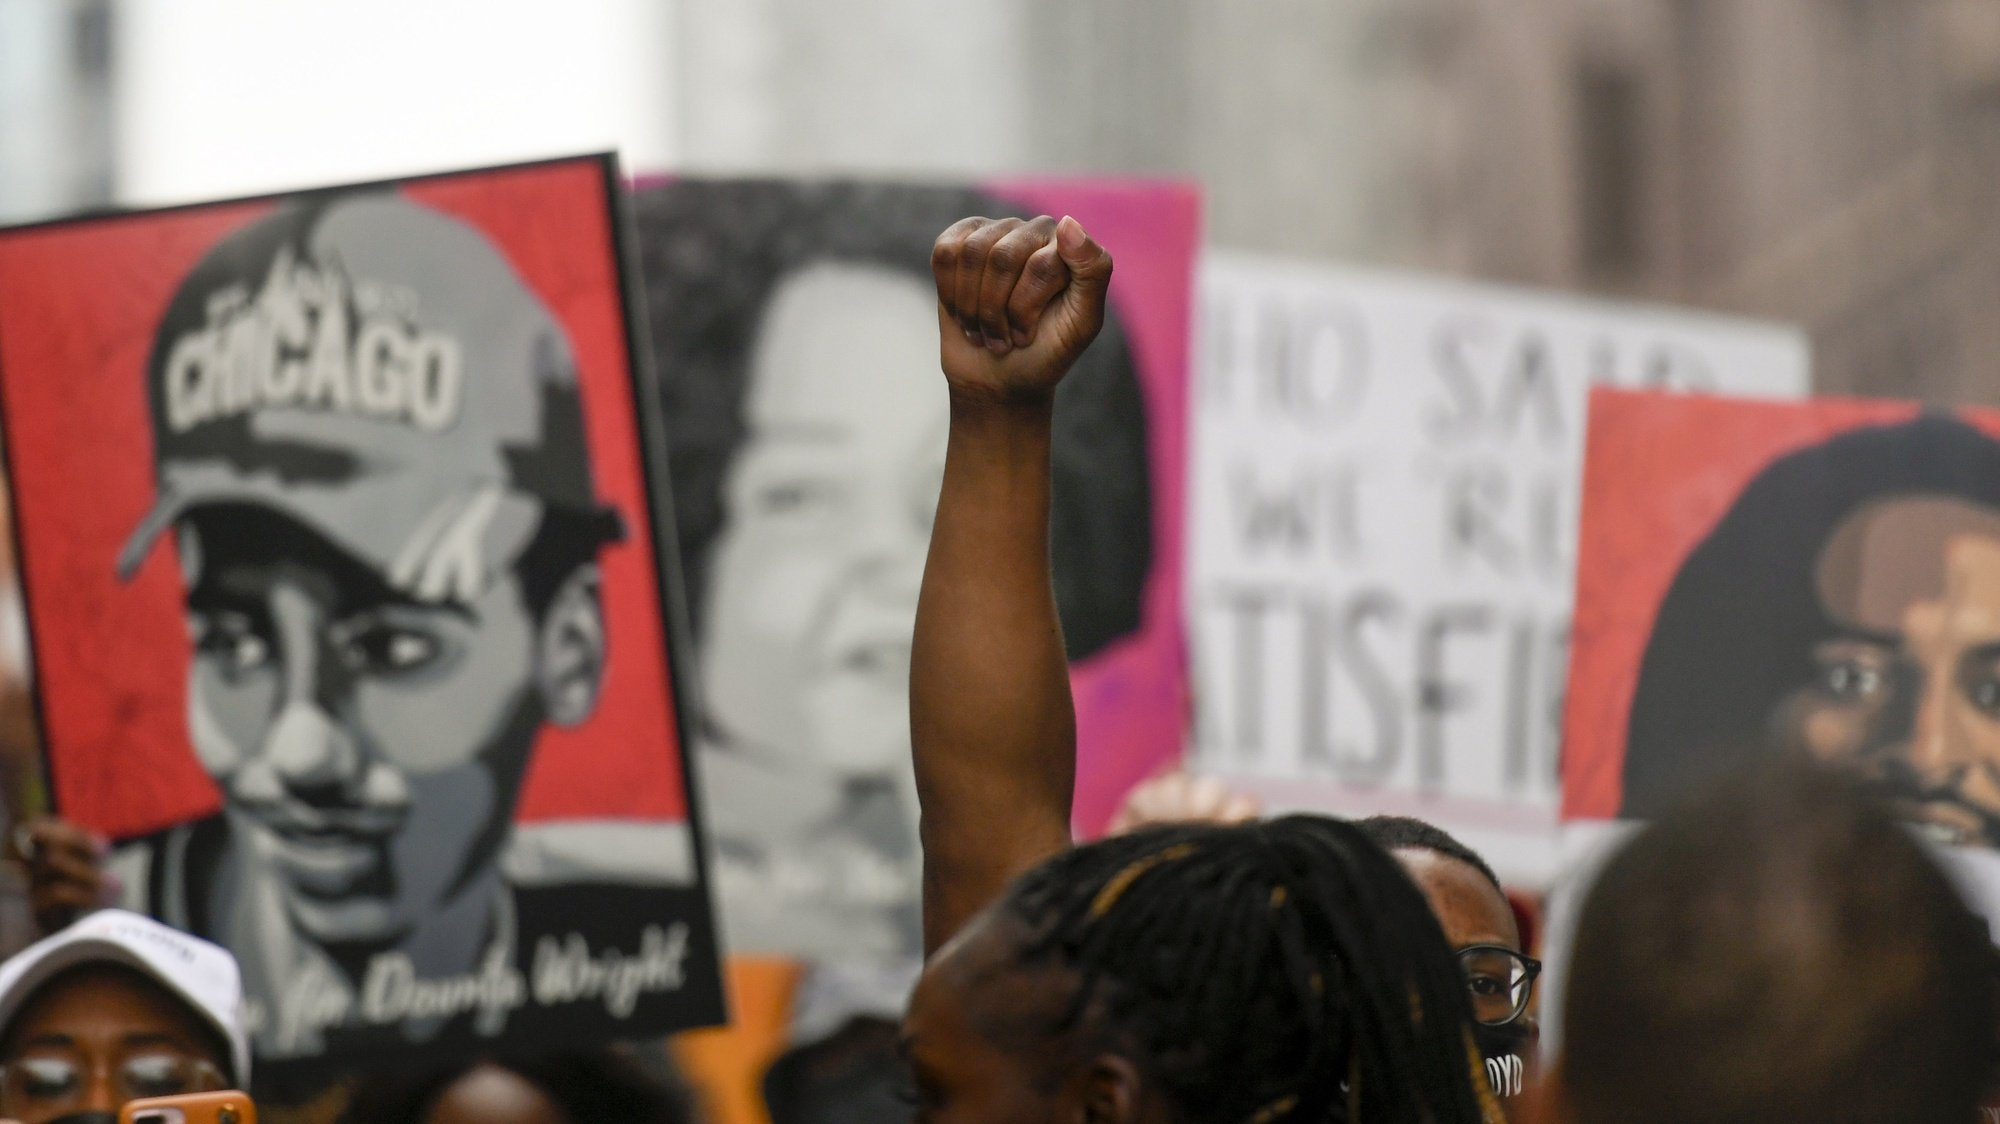 epa09224577 Hundreds of protesters march through the streets to commemorate the anniversary of George Floyd's death in Minneapolis, Minnesota, USA, 23 May 2021. The rally and march is part of several days of events to mark the one year anniversary of Floyd's death that sparked the Black Lives Matter movement around the world.  EPA/CRAIG LASSIG